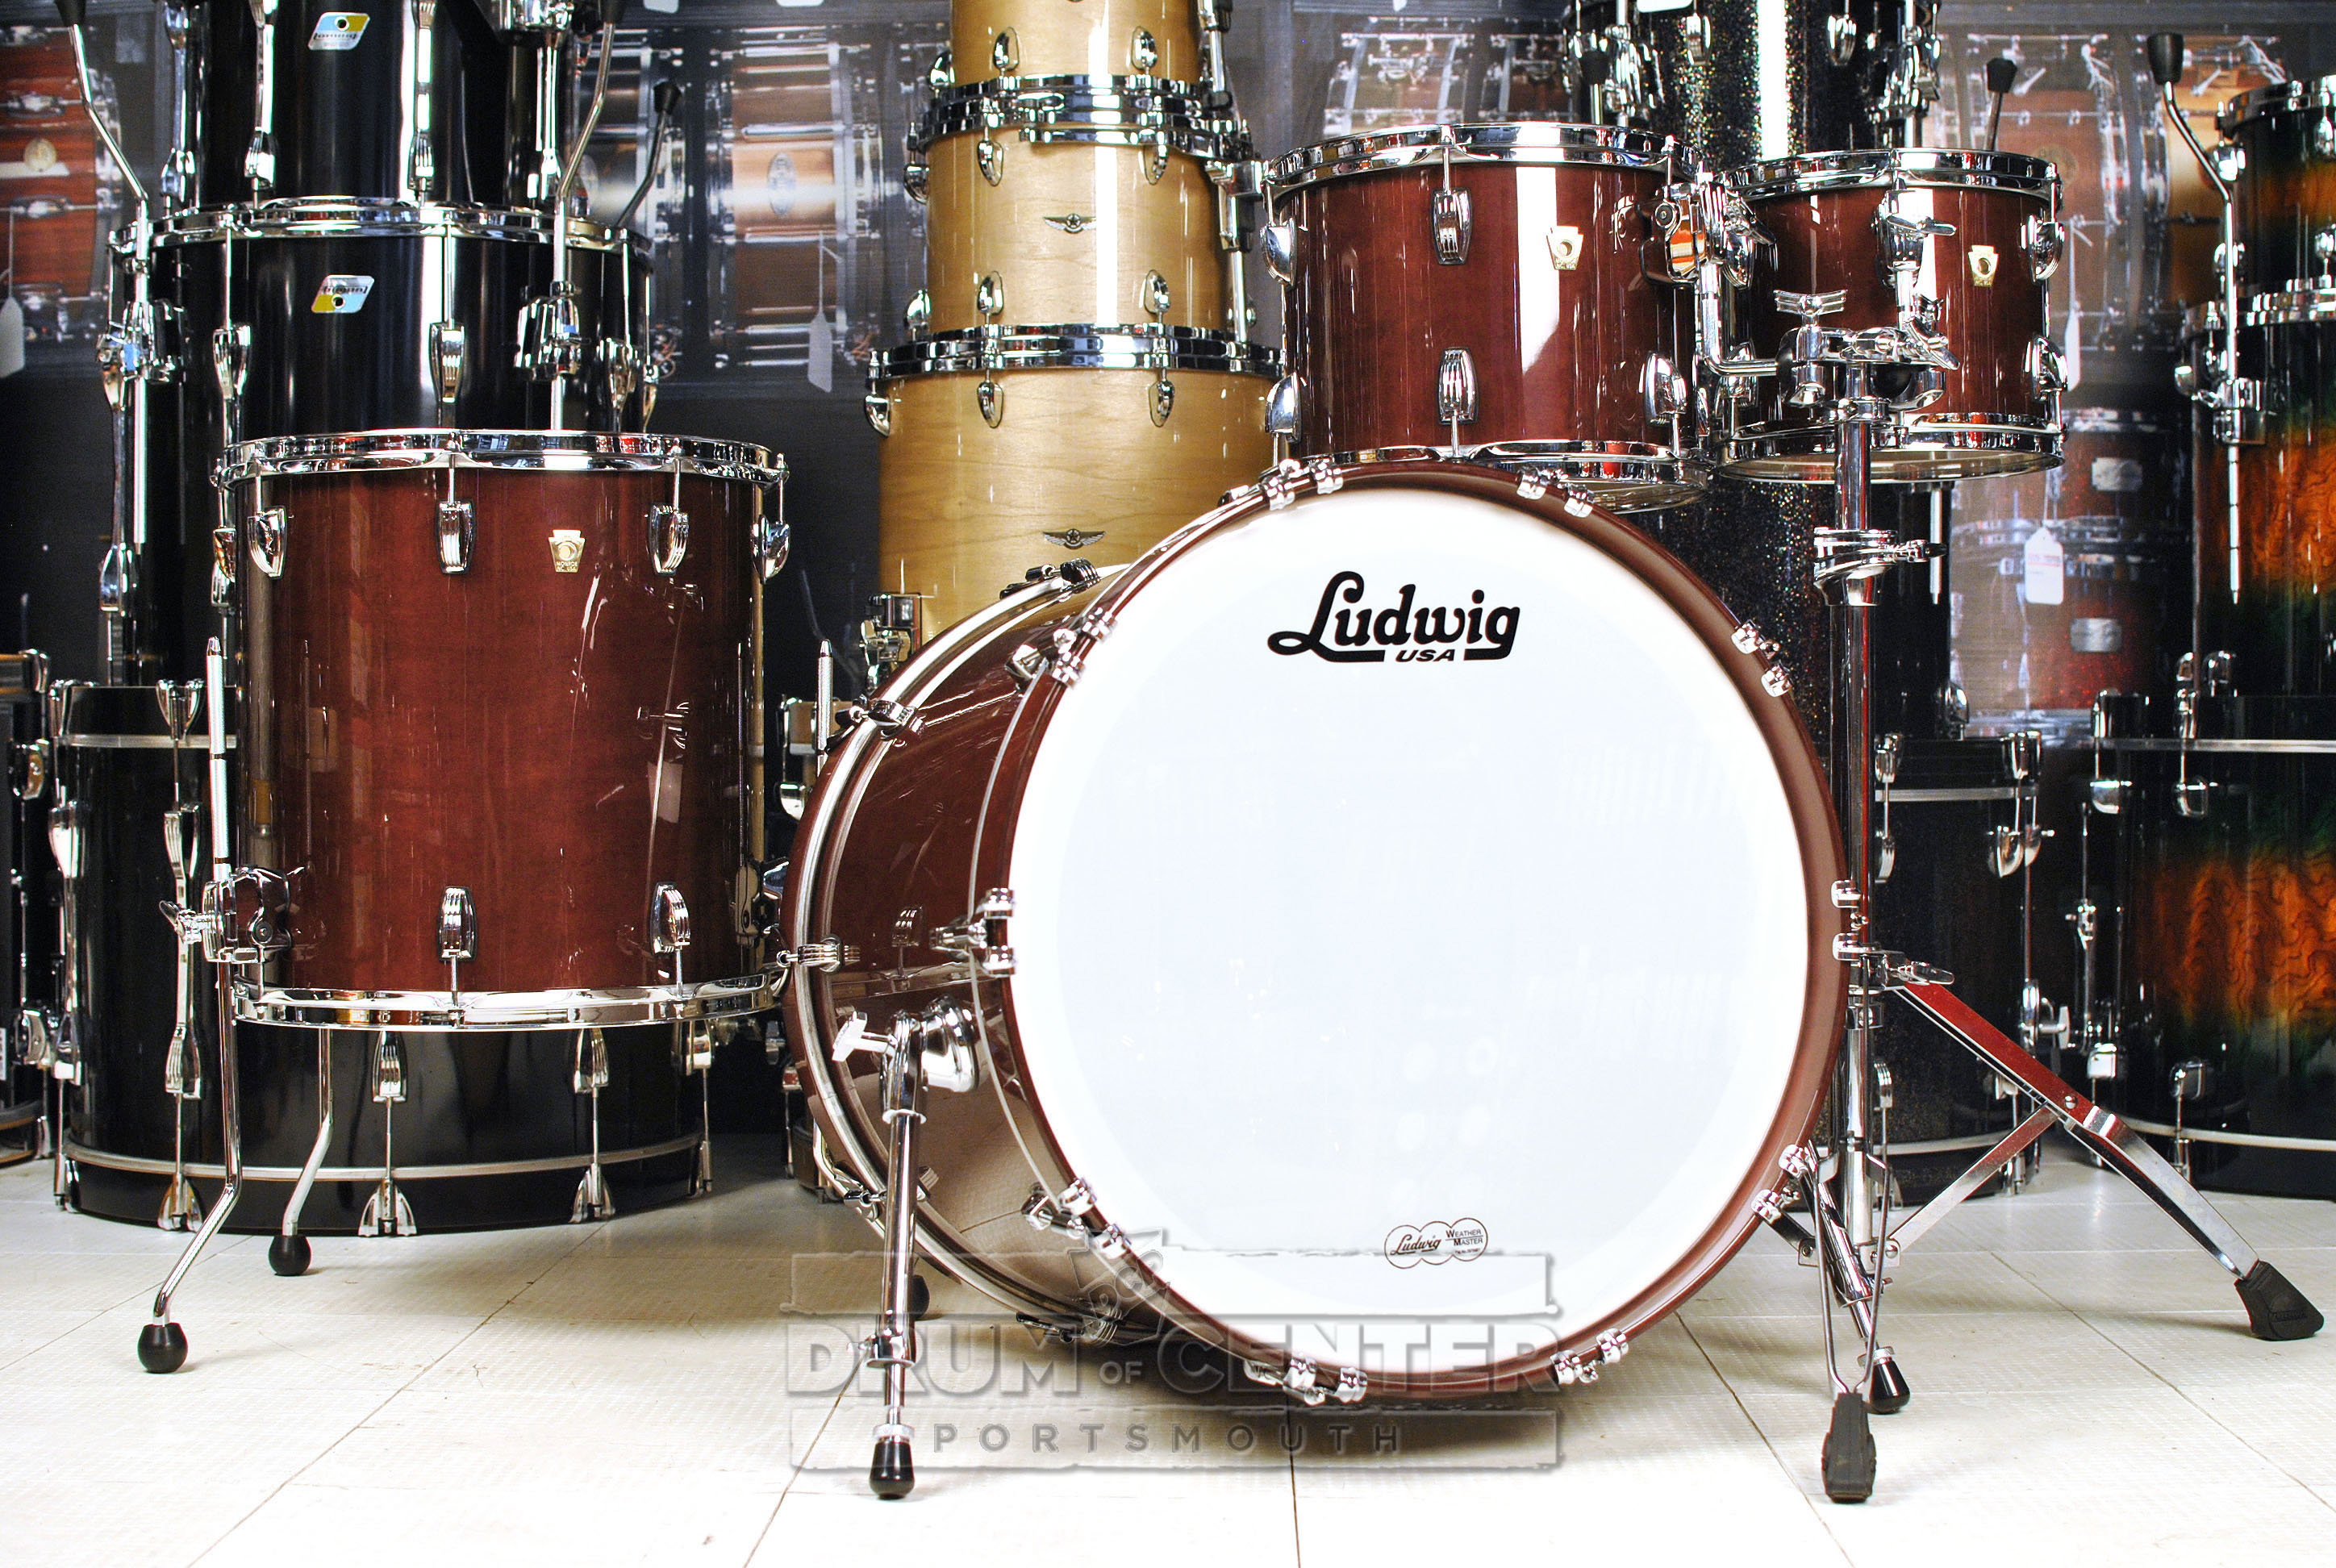 ludwig demo drums classic maple 4pc mod22 drum set mahogany stain ebay. Black Bedroom Furniture Sets. Home Design Ideas